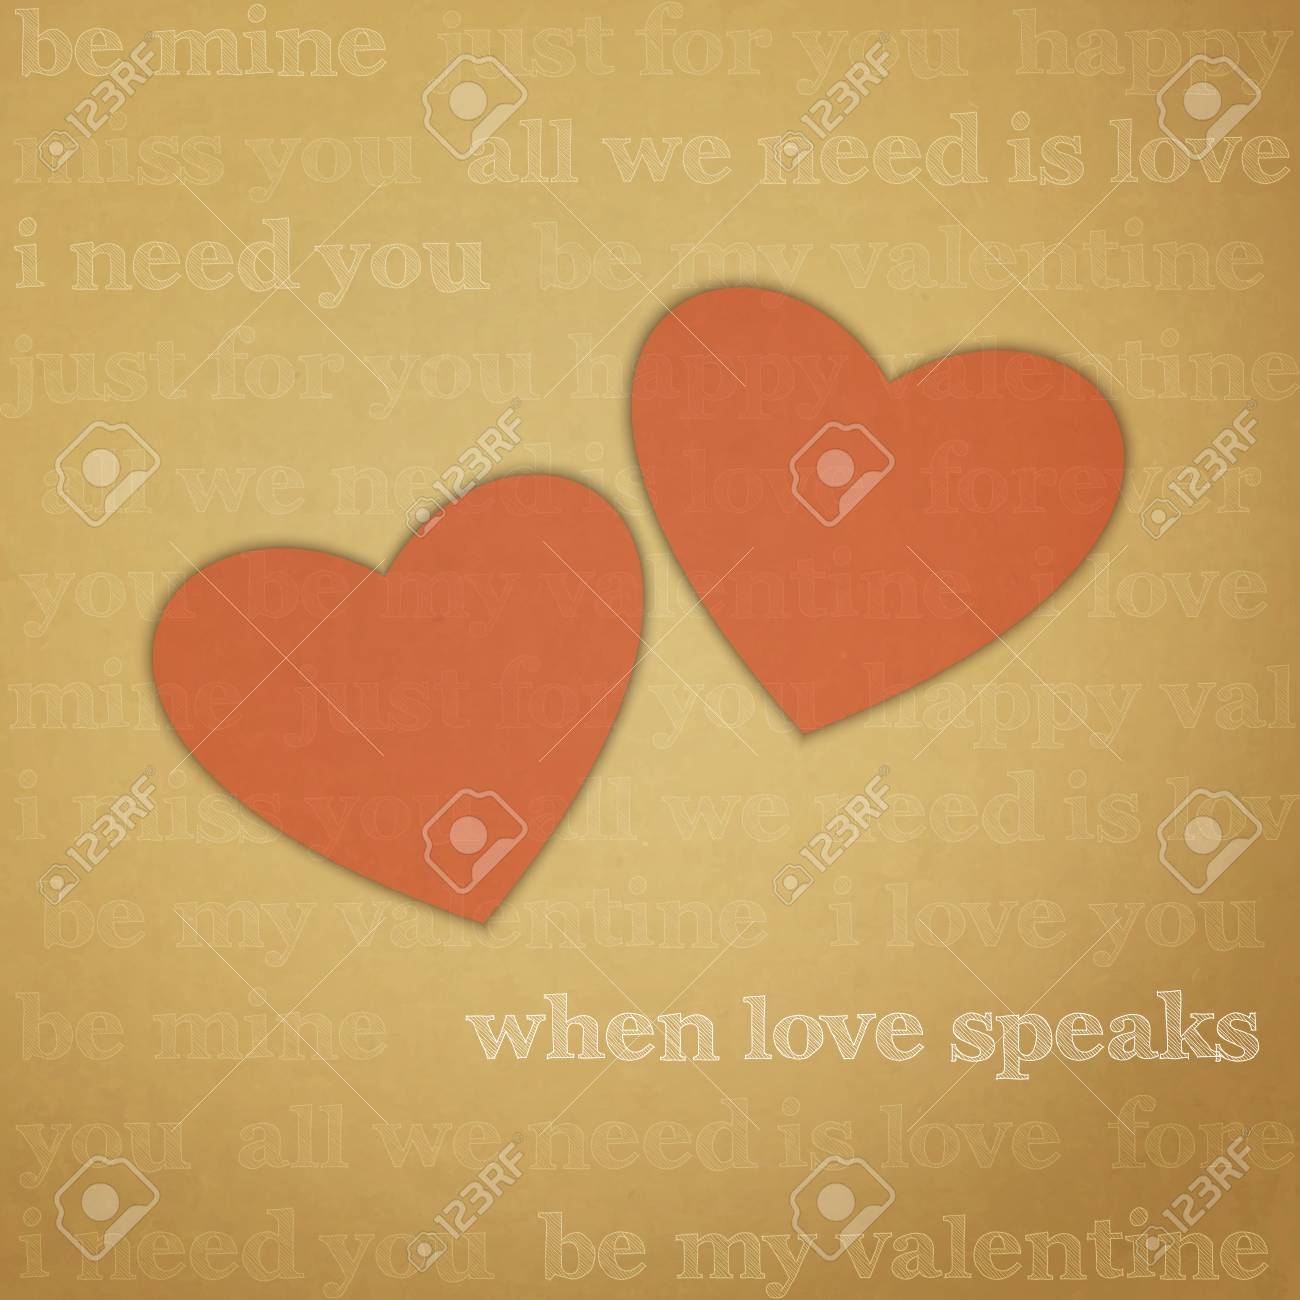 new image with hearts symbols on paper background can use like greeting card Stock Vector - 22479110